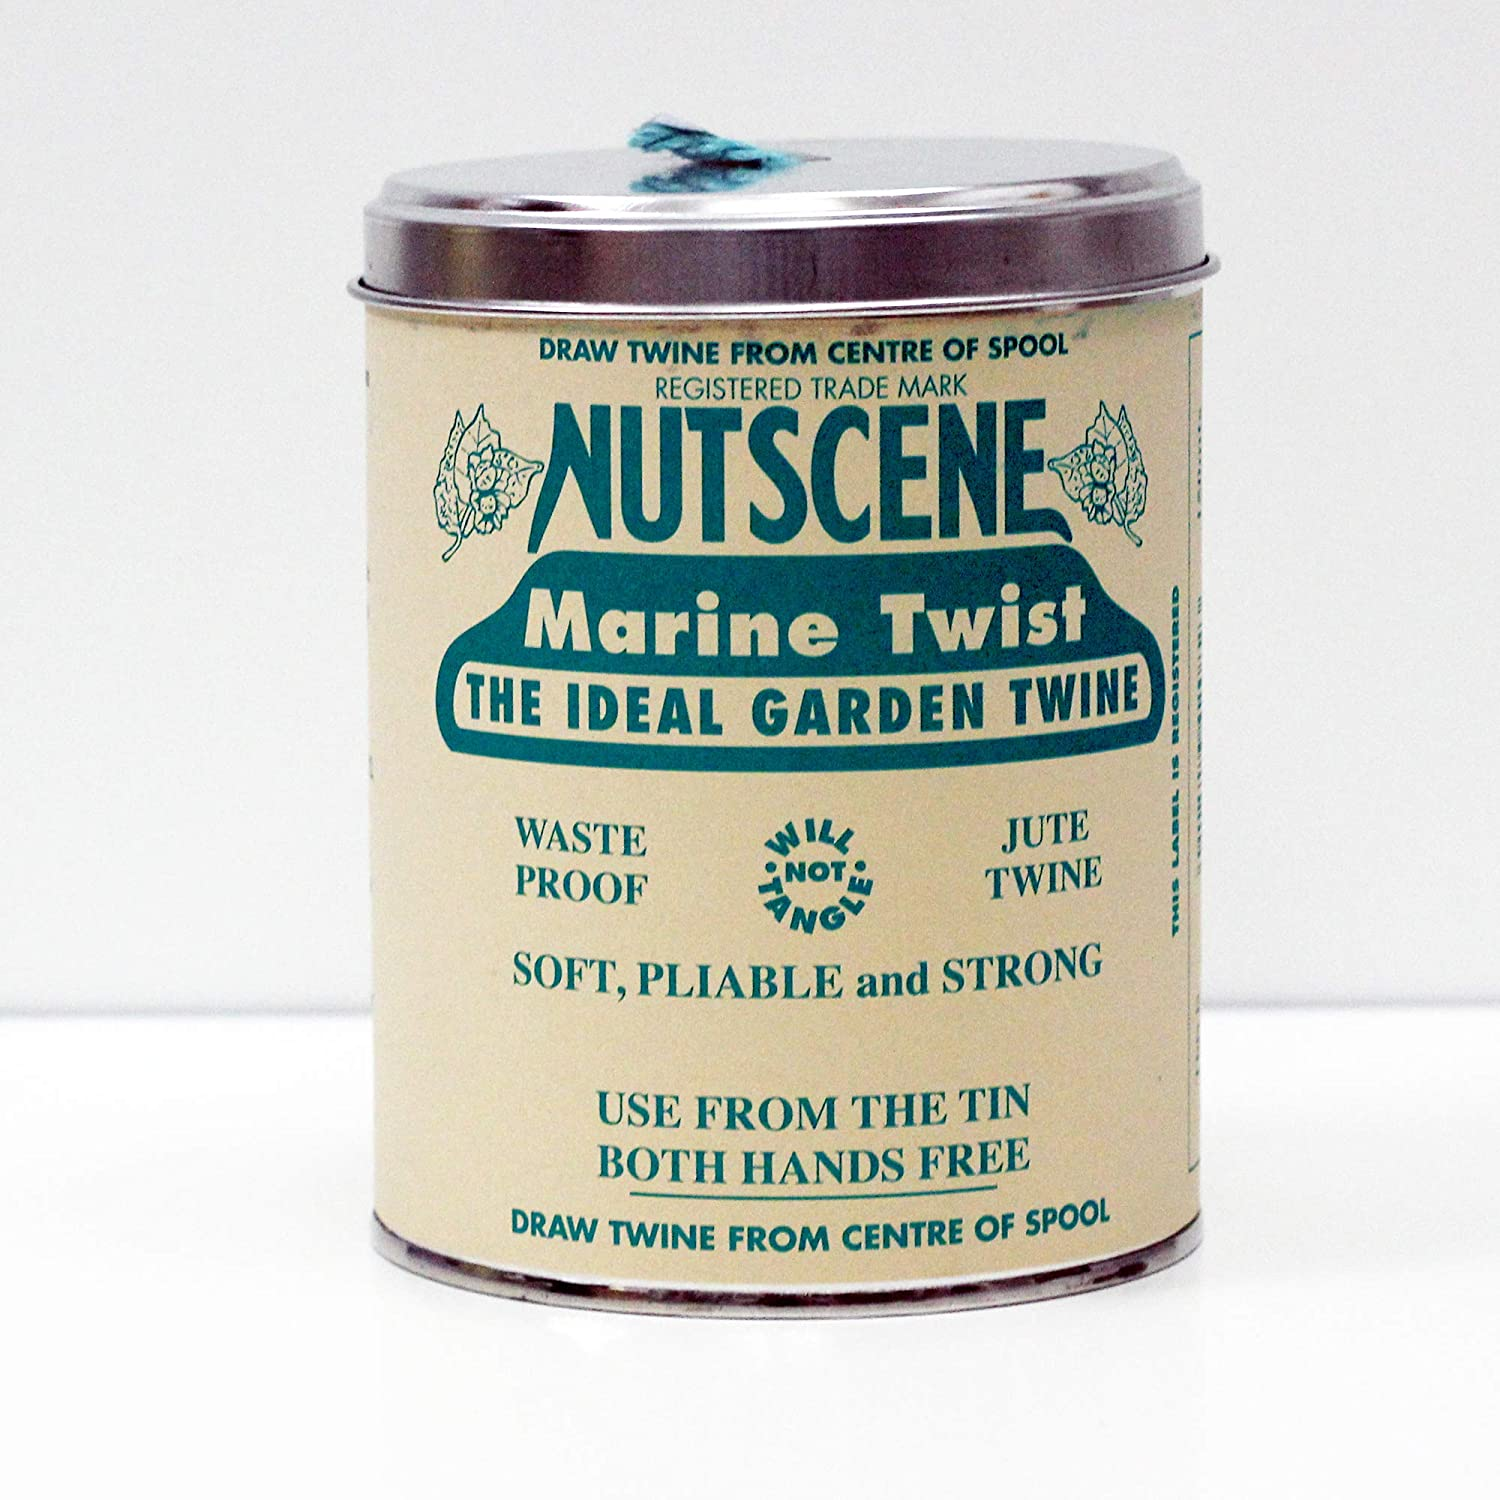 with Their Heritage Scottish Jute Twine and Hole in Top for Easy Dispensing Lime 164 Yards. 14 Colors to Choose from Tin /'O/' Twine Nancy Nikko NUTSCENE Iconic Tin